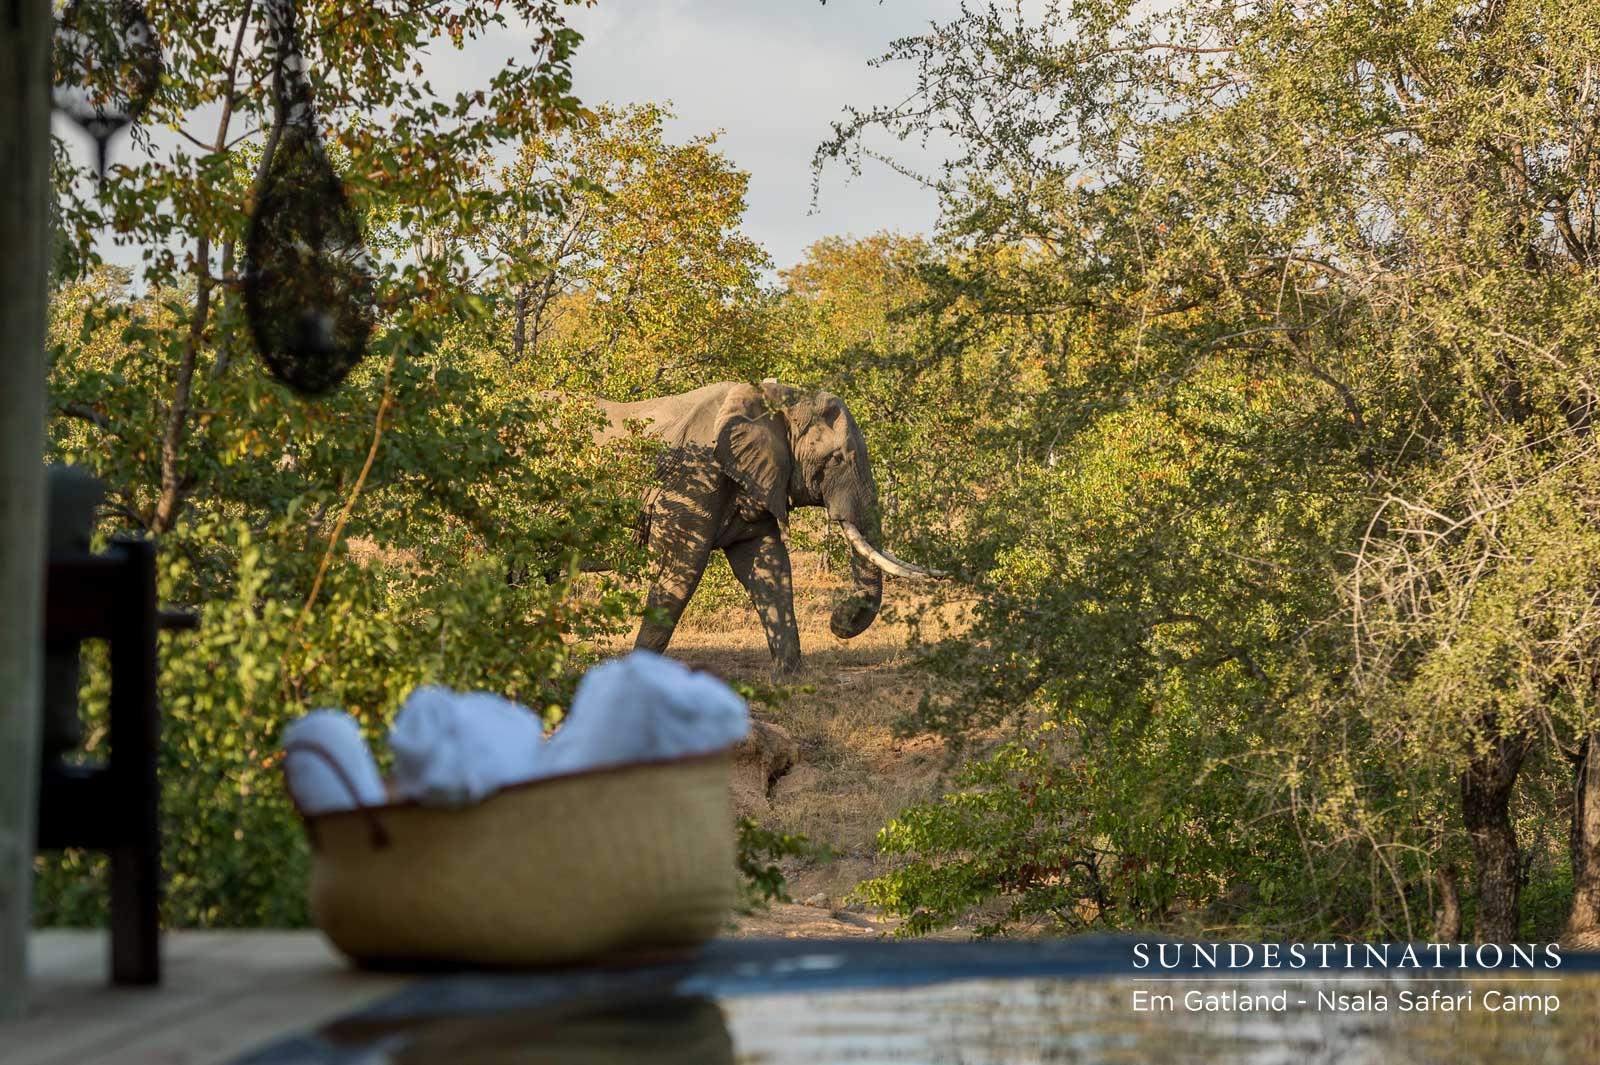 Elephants at Nsala Safari Camp